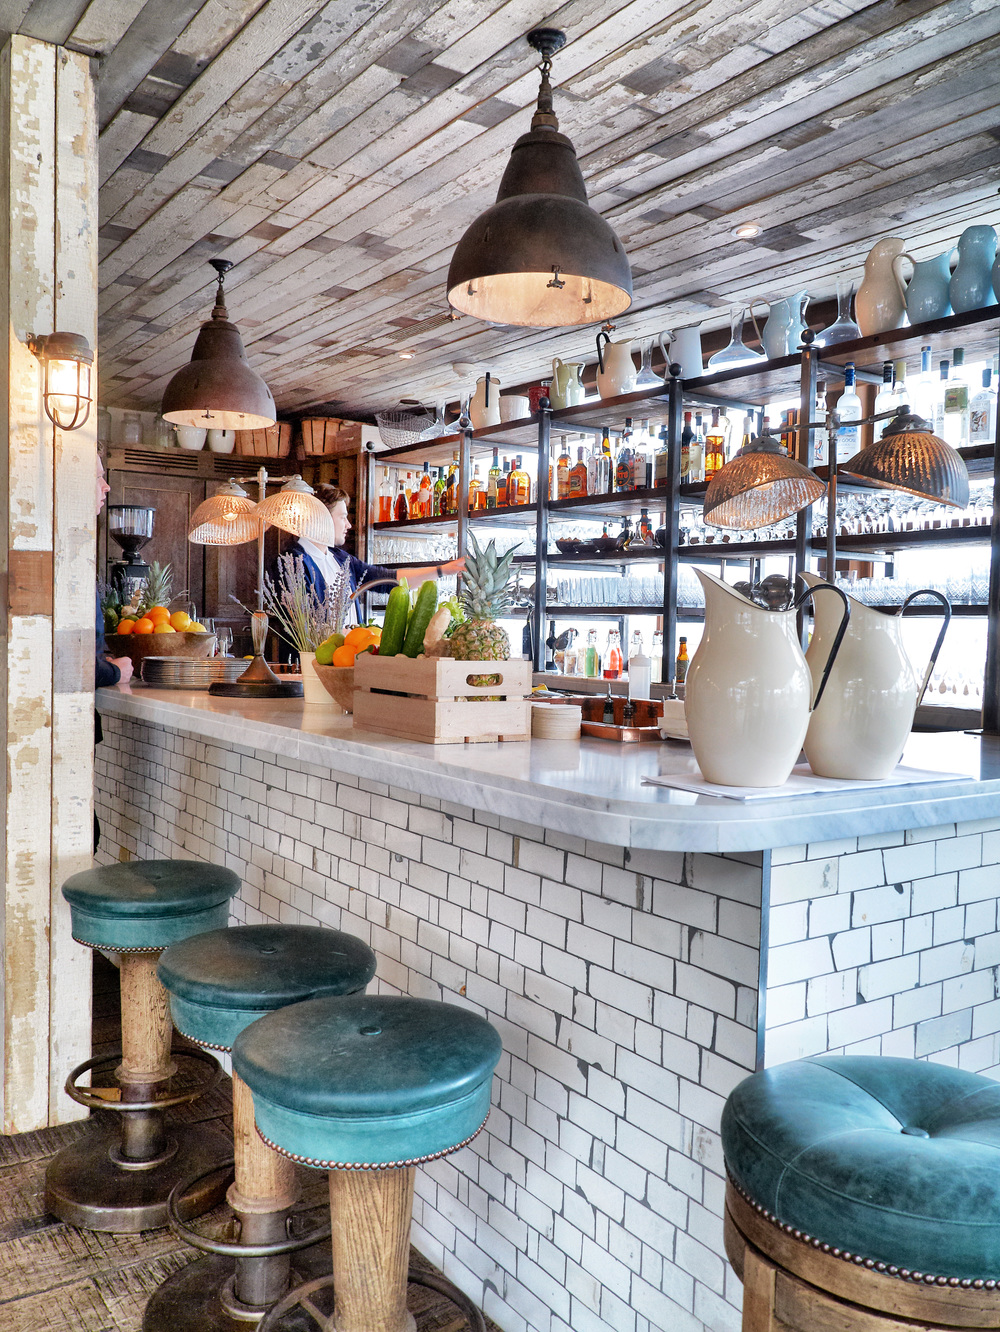 Photo credit: Shoreditch House / Soho Hotels images